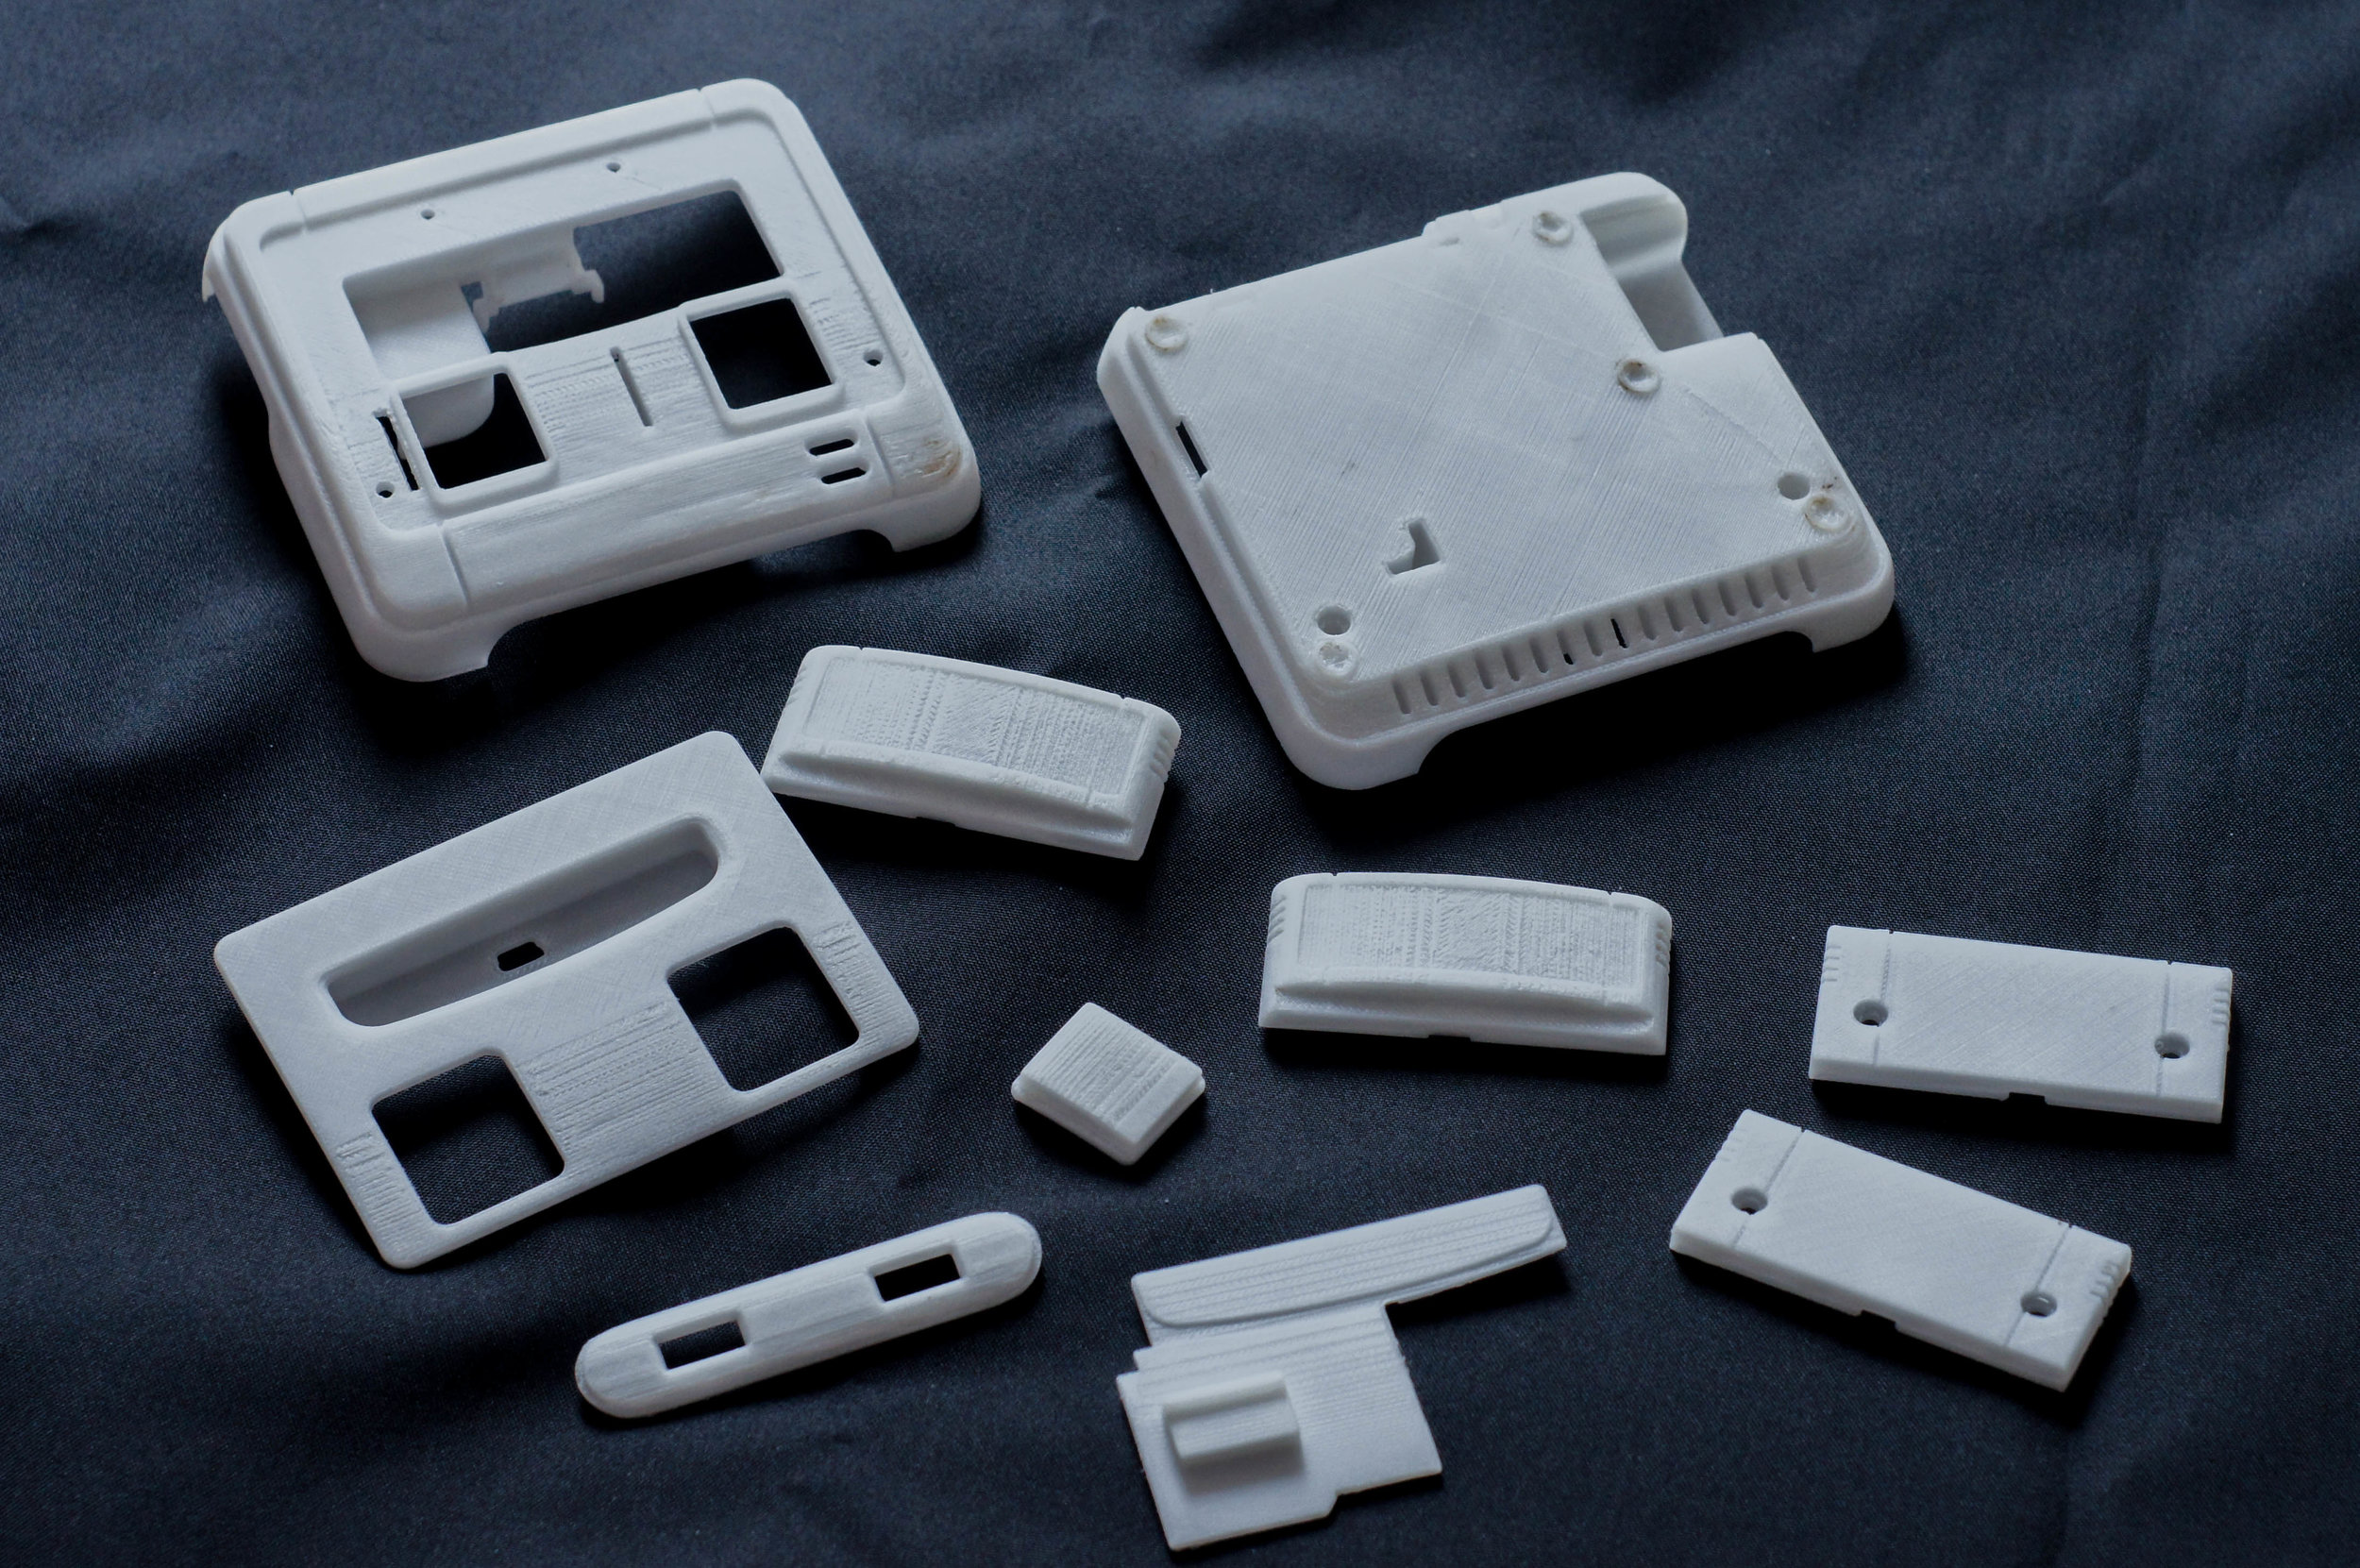 Parts were designed and modeled in CAD and FDM 3D printed. The parts required sanding due to the layer thickness of the 3D print.